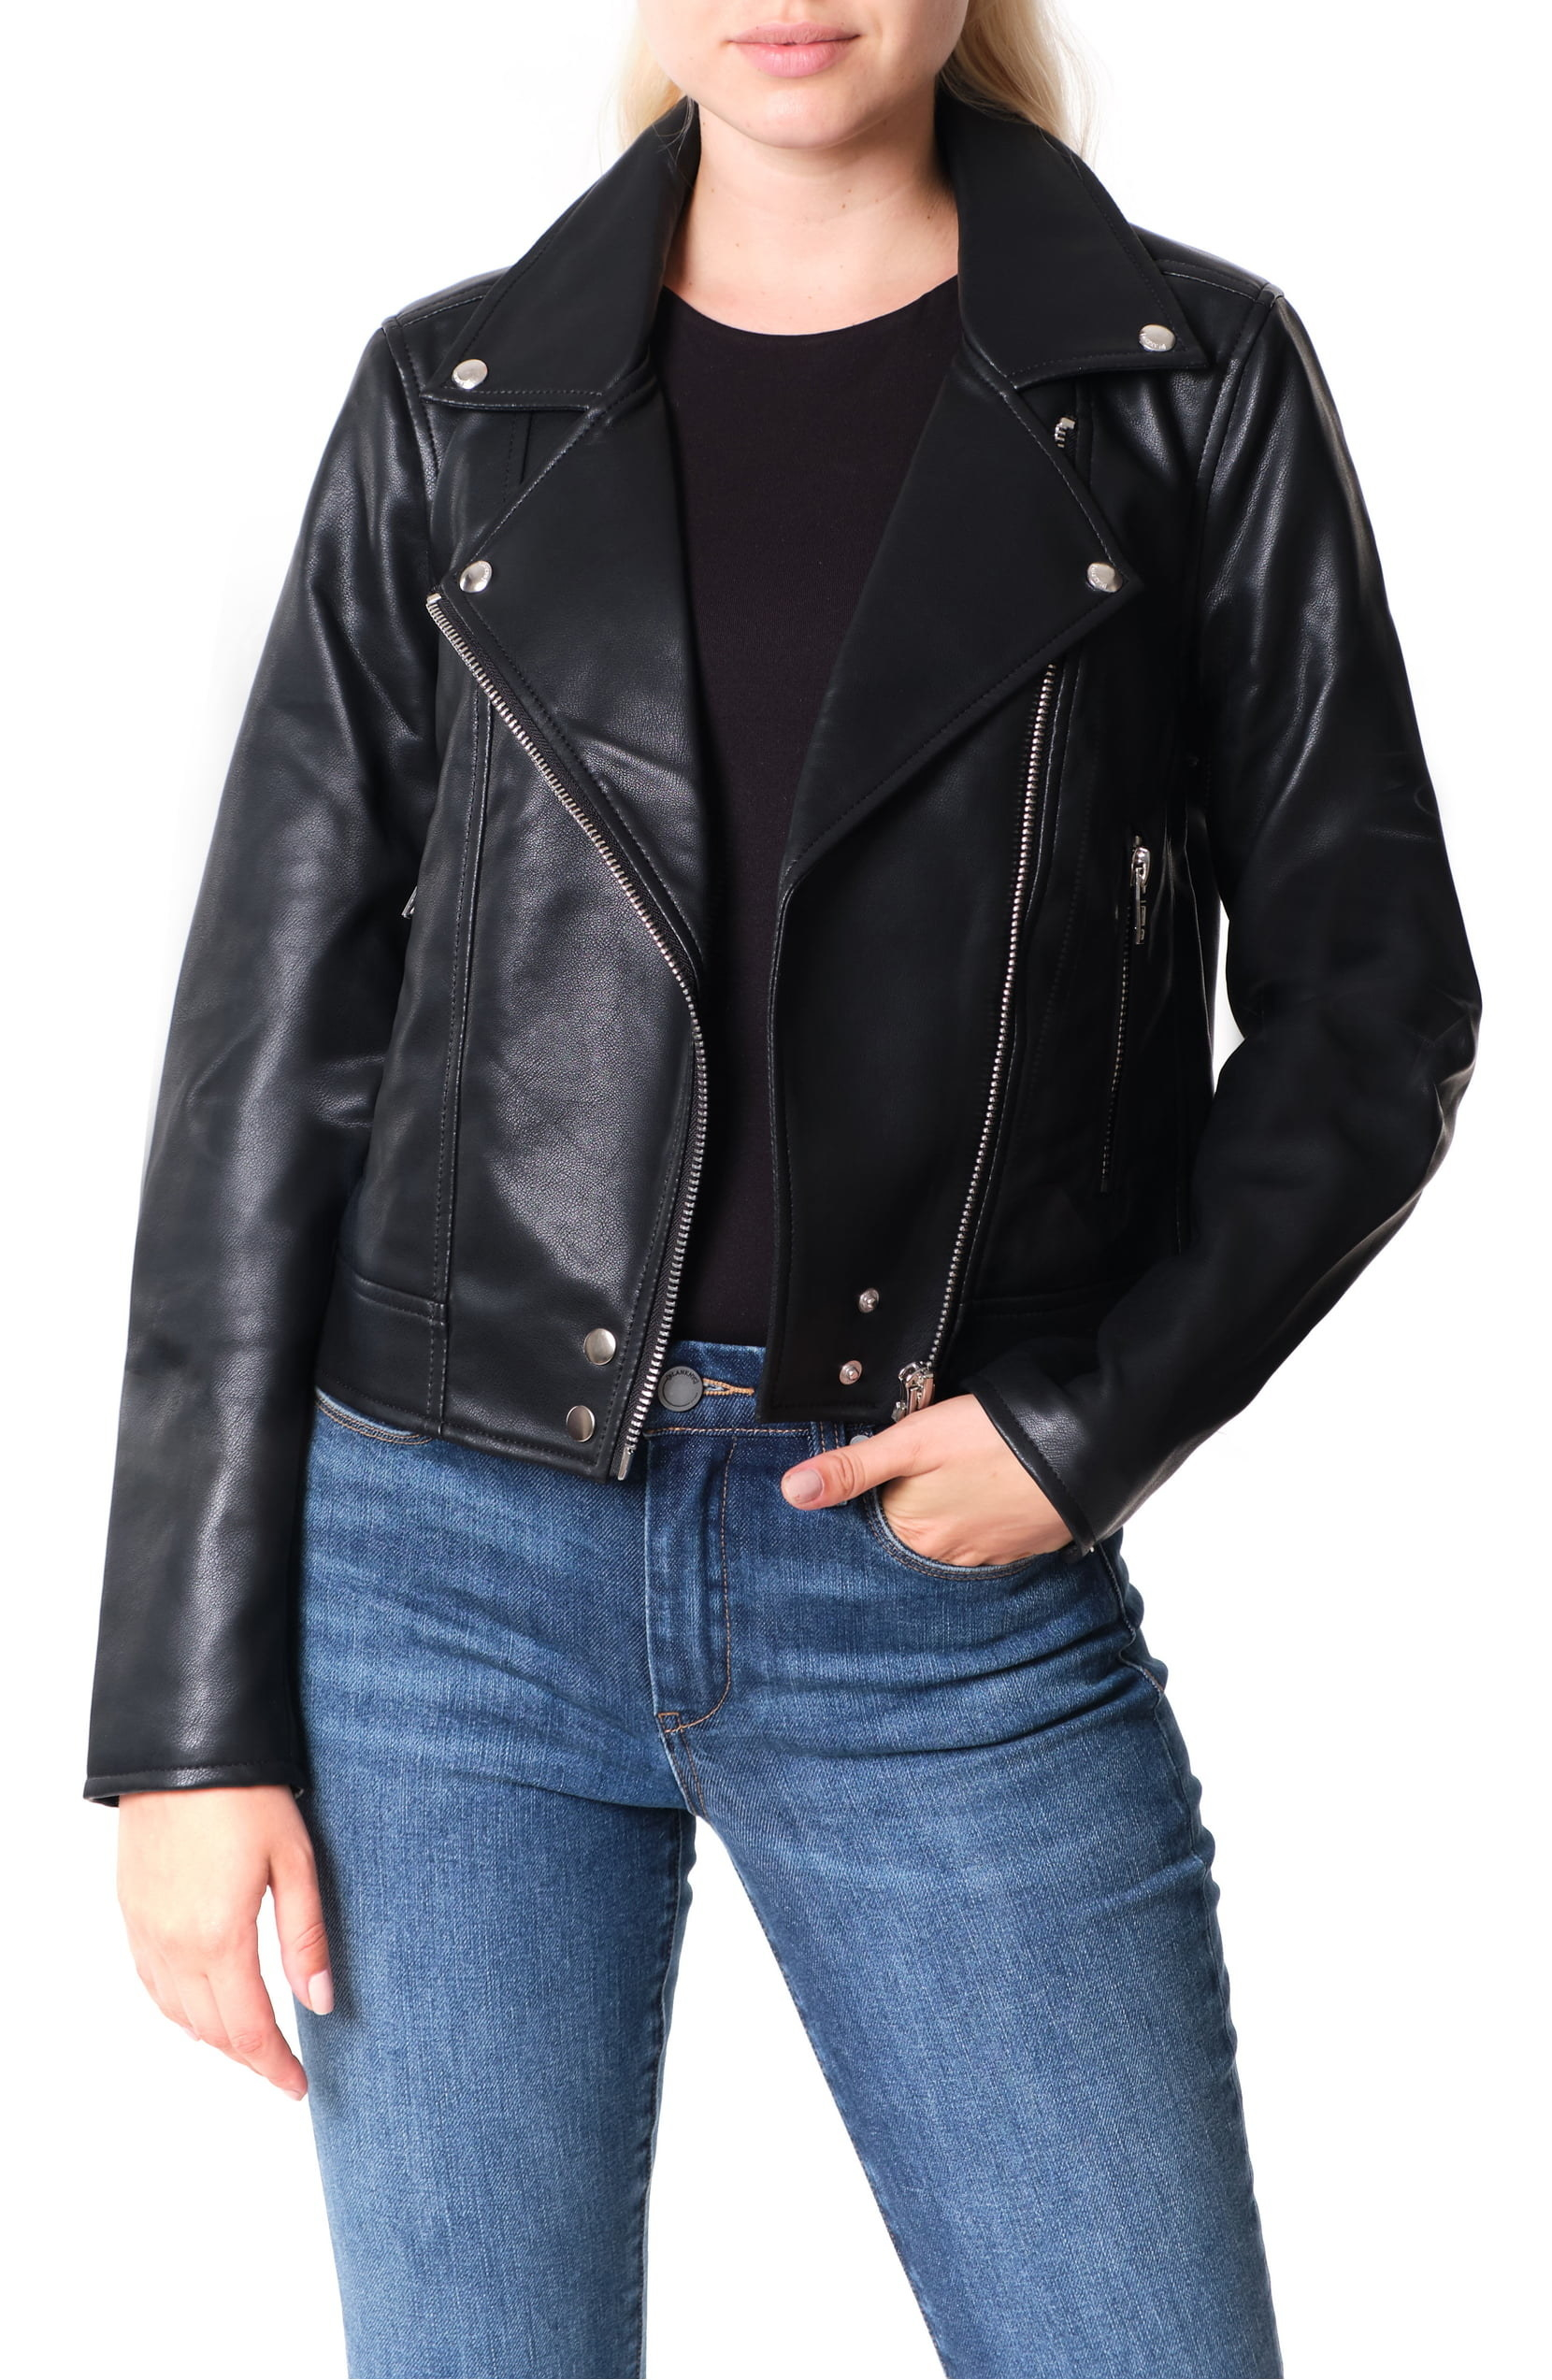 A model wearing the BlankNYC Good Vibes Faux Leather Moto Jacket in black.